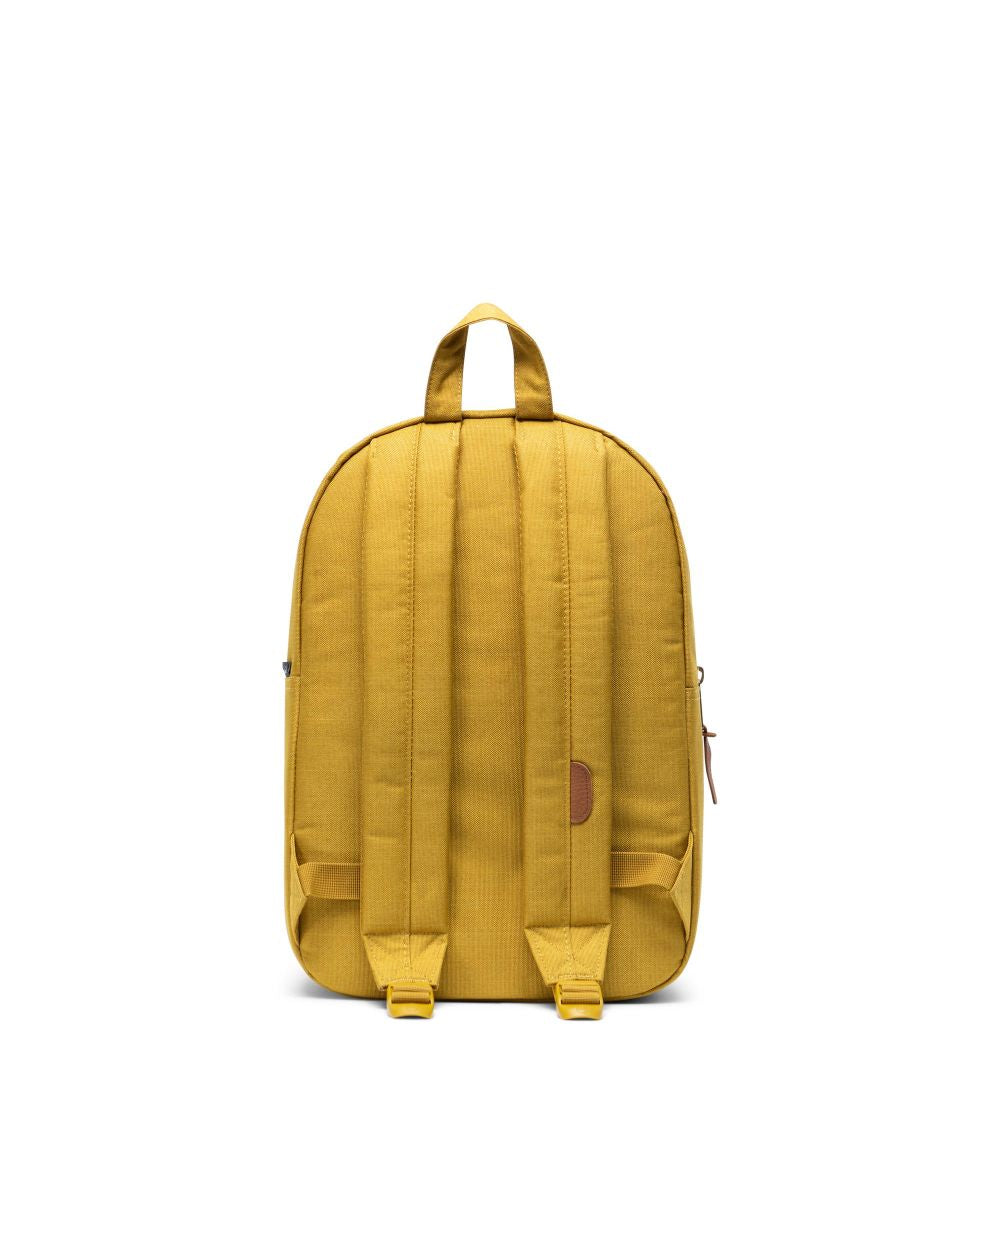 SETTLEMENT BACKPACK MID-VOLUME - ARROW WOOD